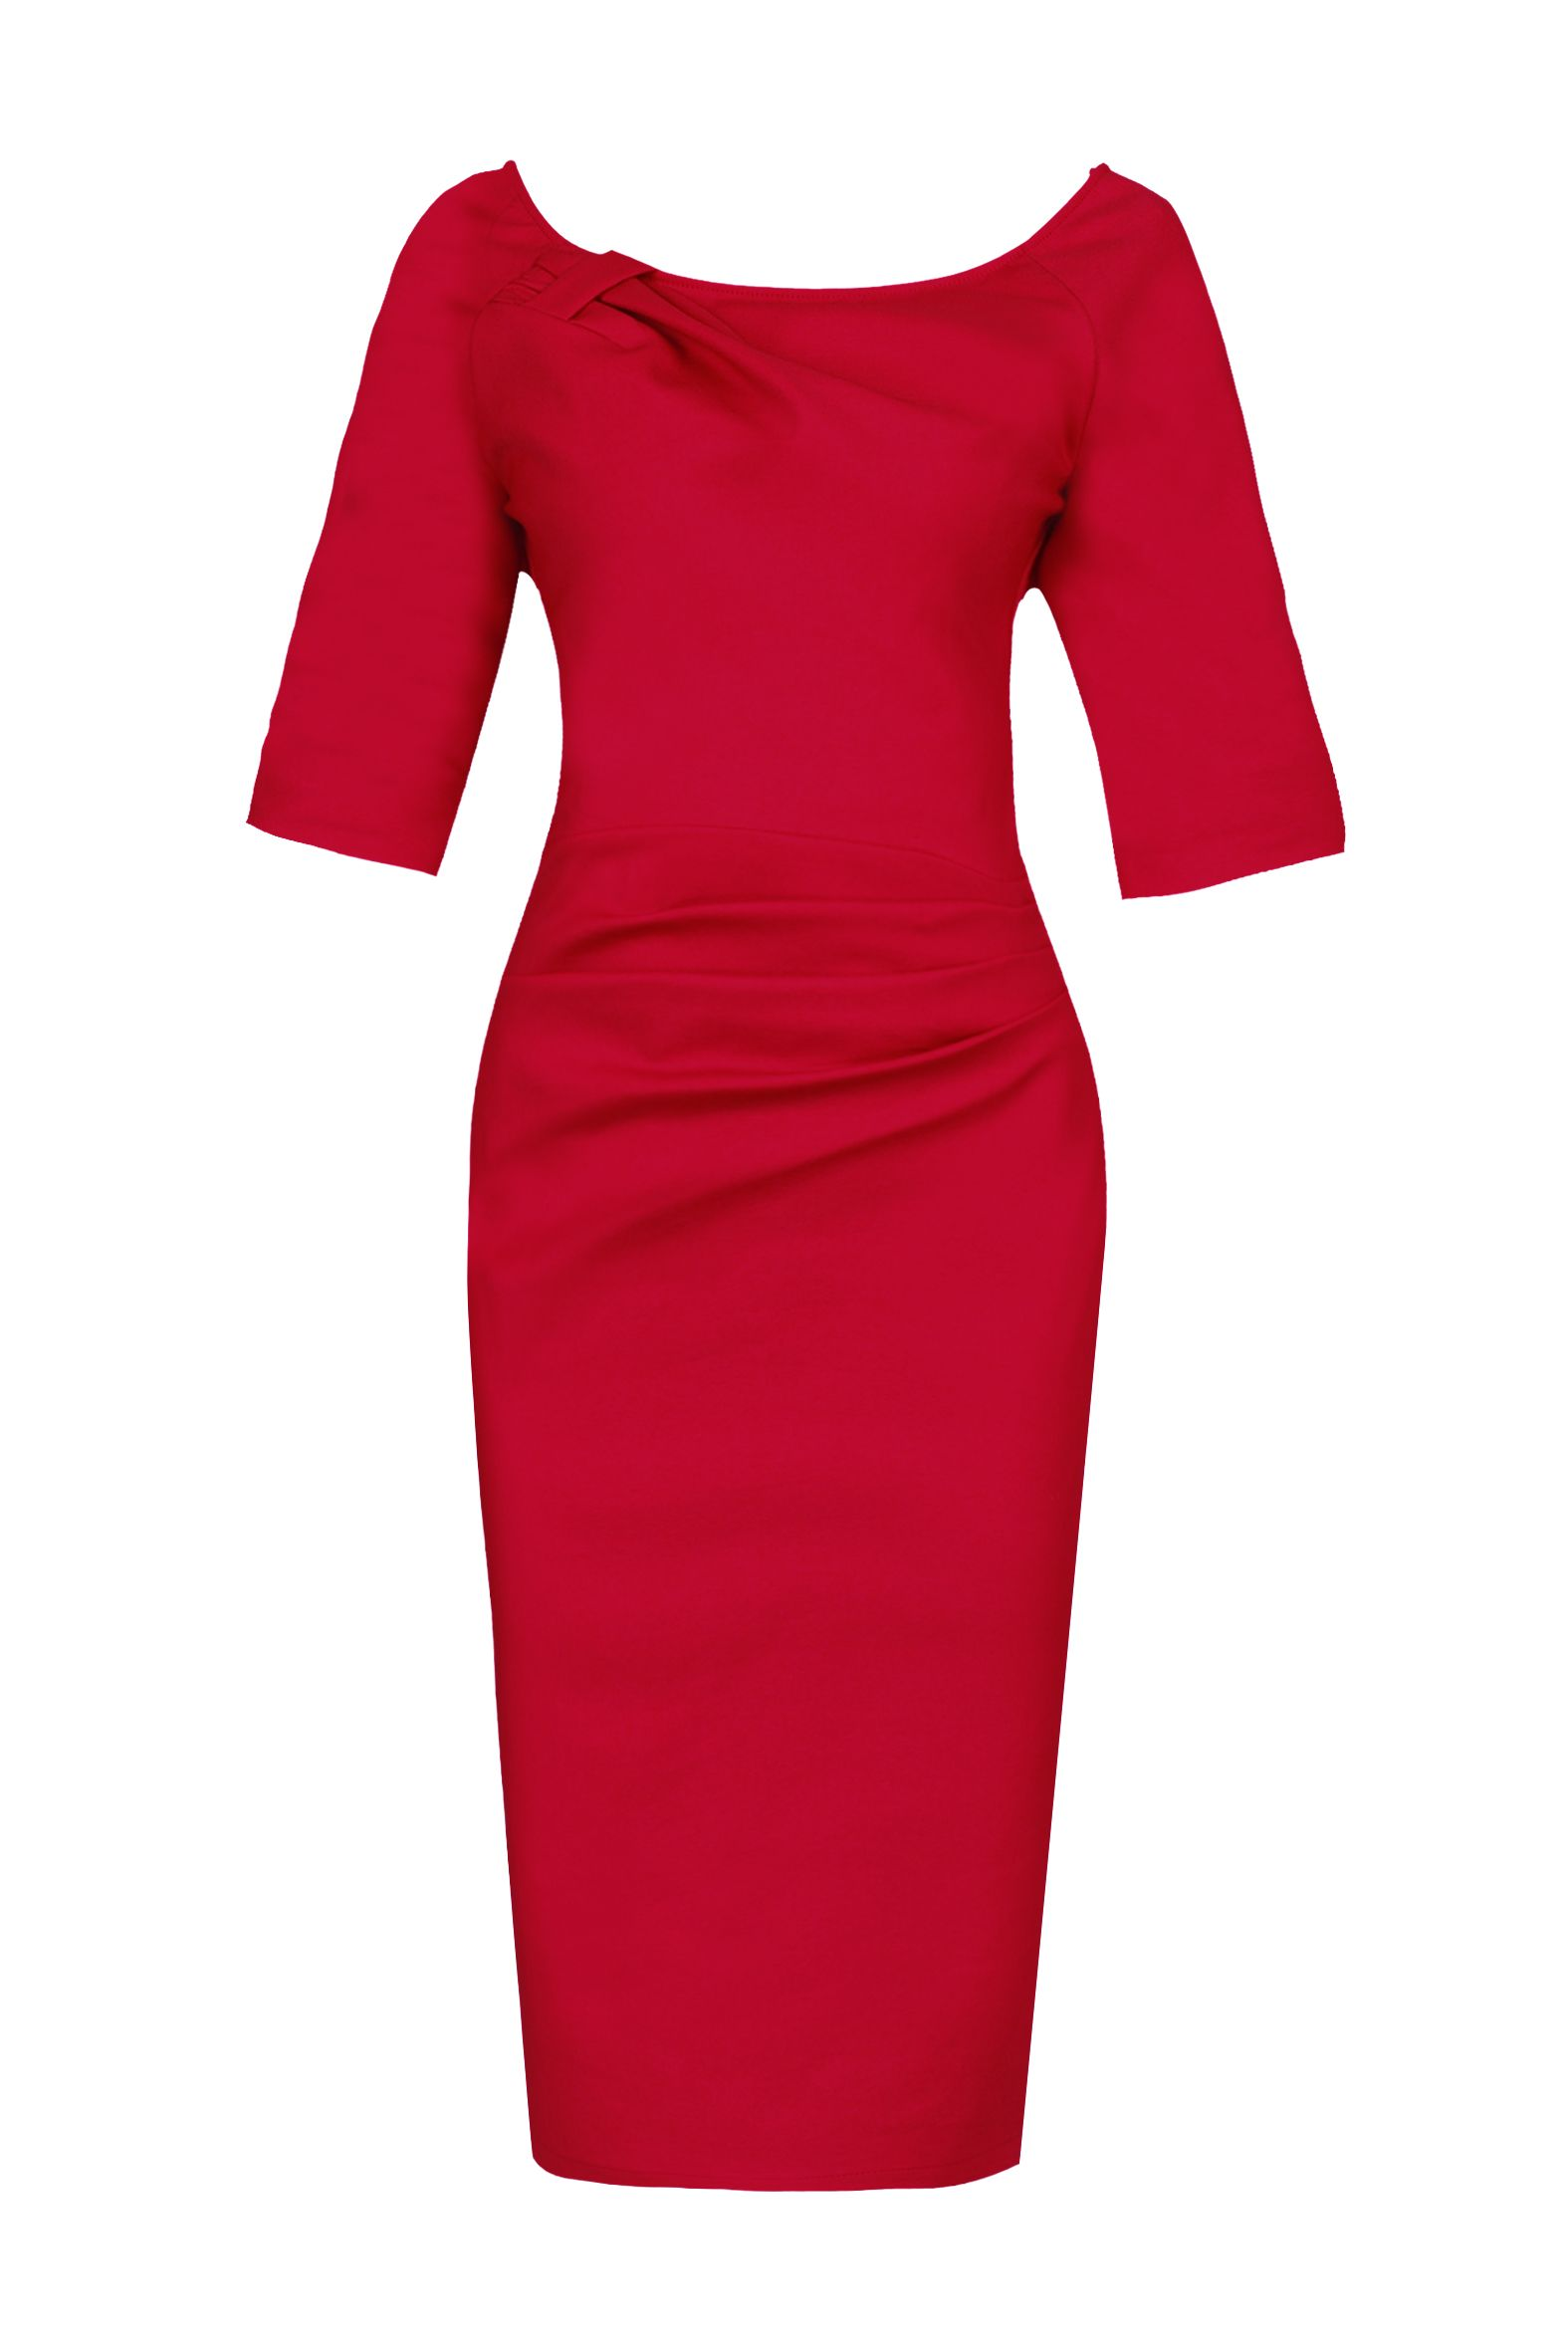 Jolie Moi 1/2 Sleeve Ruched Wiggle Dress, Red